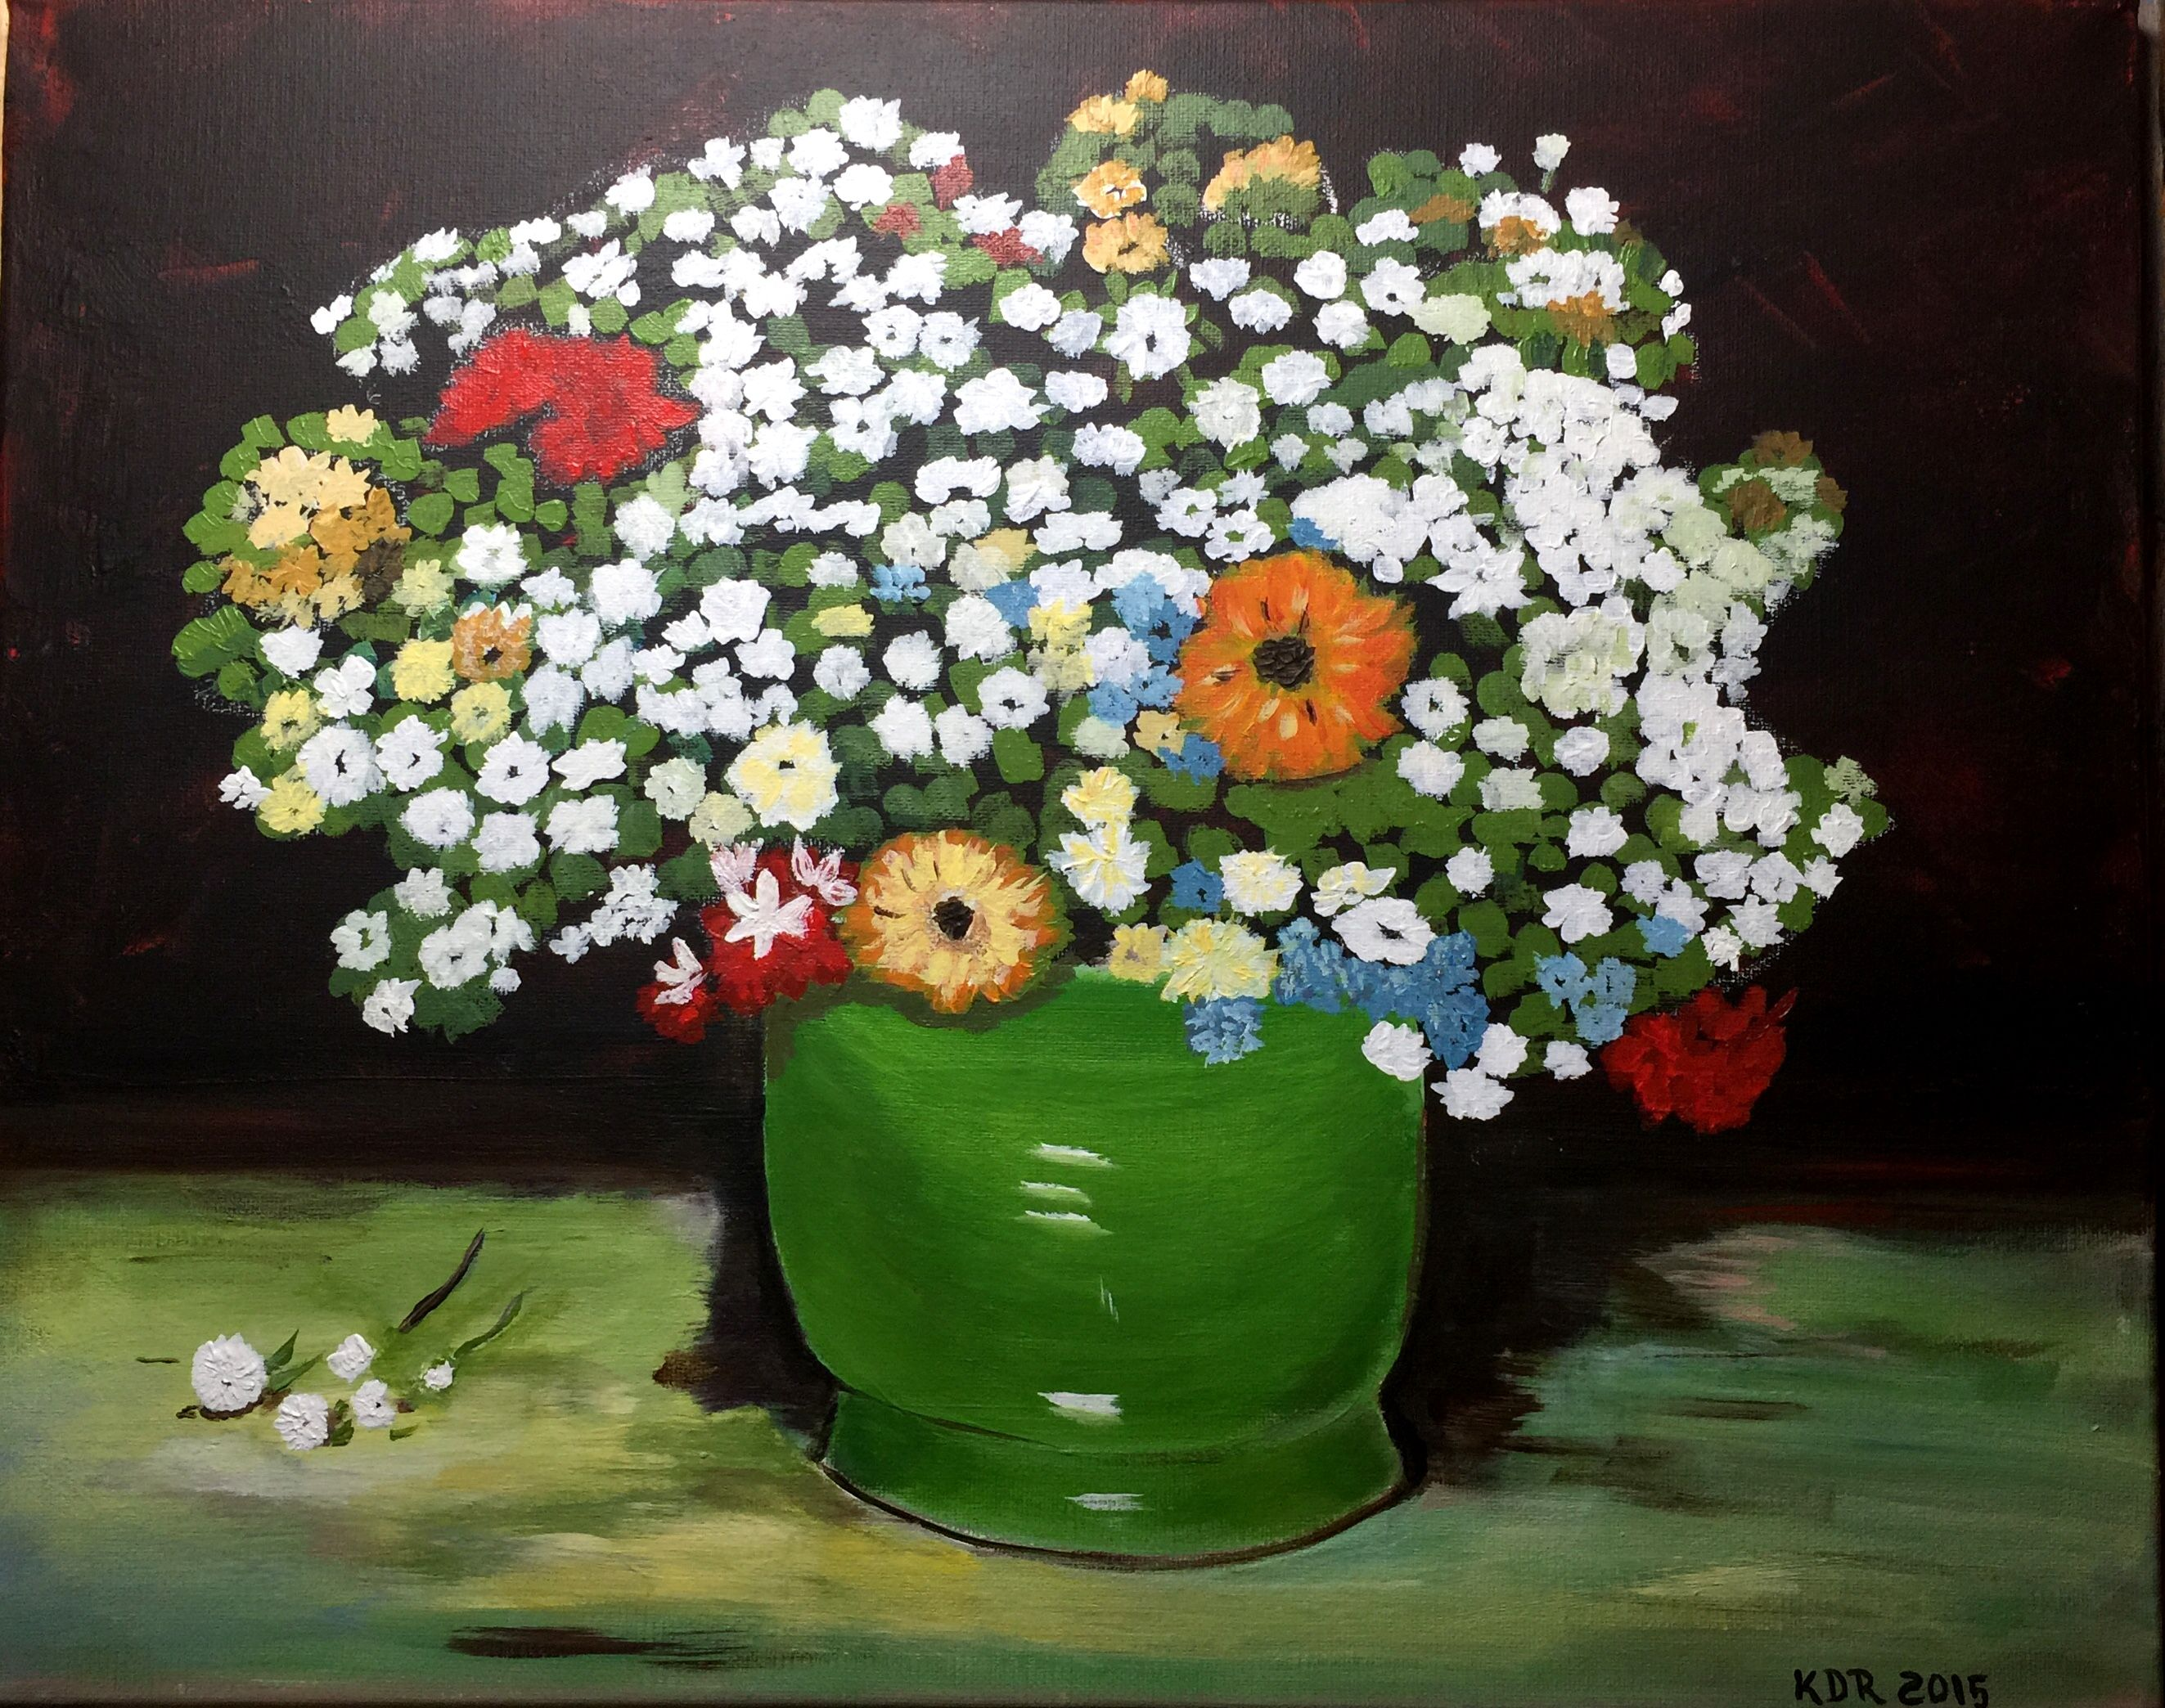 Van goghs green vase with zinnias and other flowers acrylic on van goghs green vase with zinnias and other flowers acrylic on 16x20 canvas based on reviewsmspy